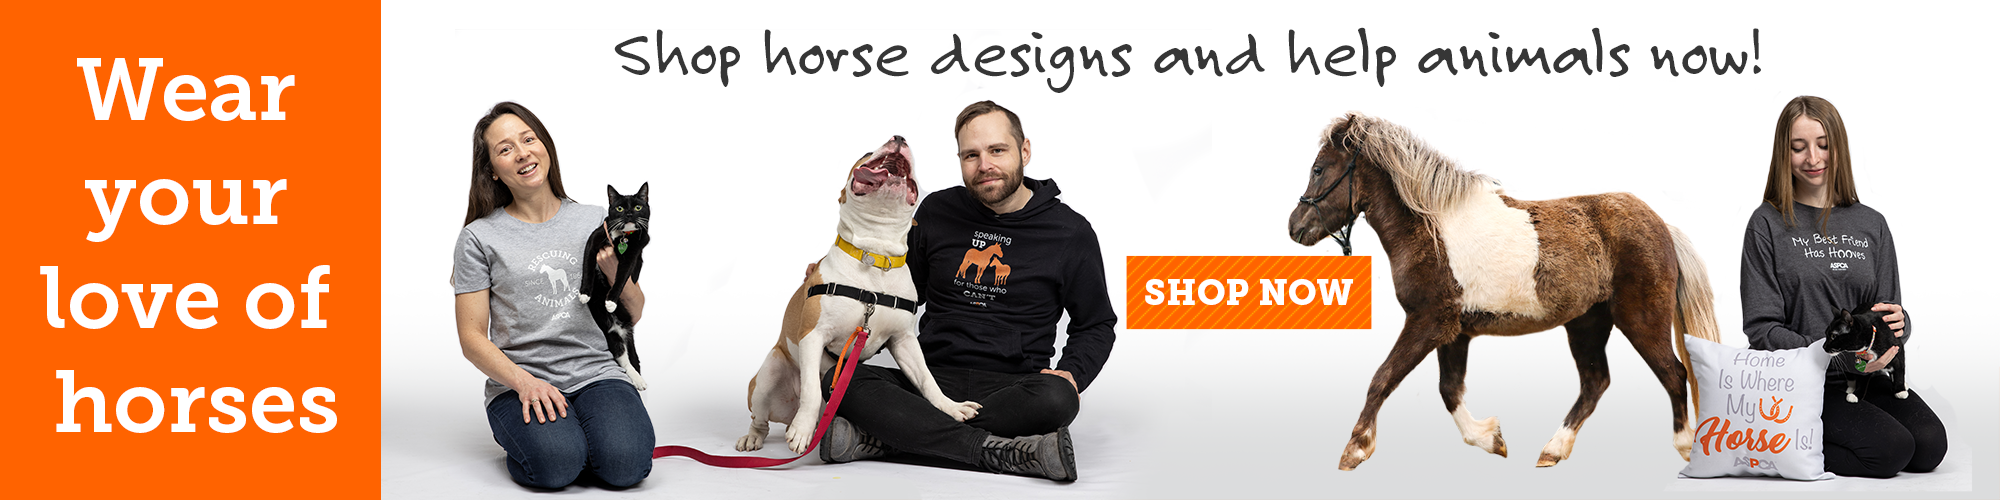 Shop our horse designs!